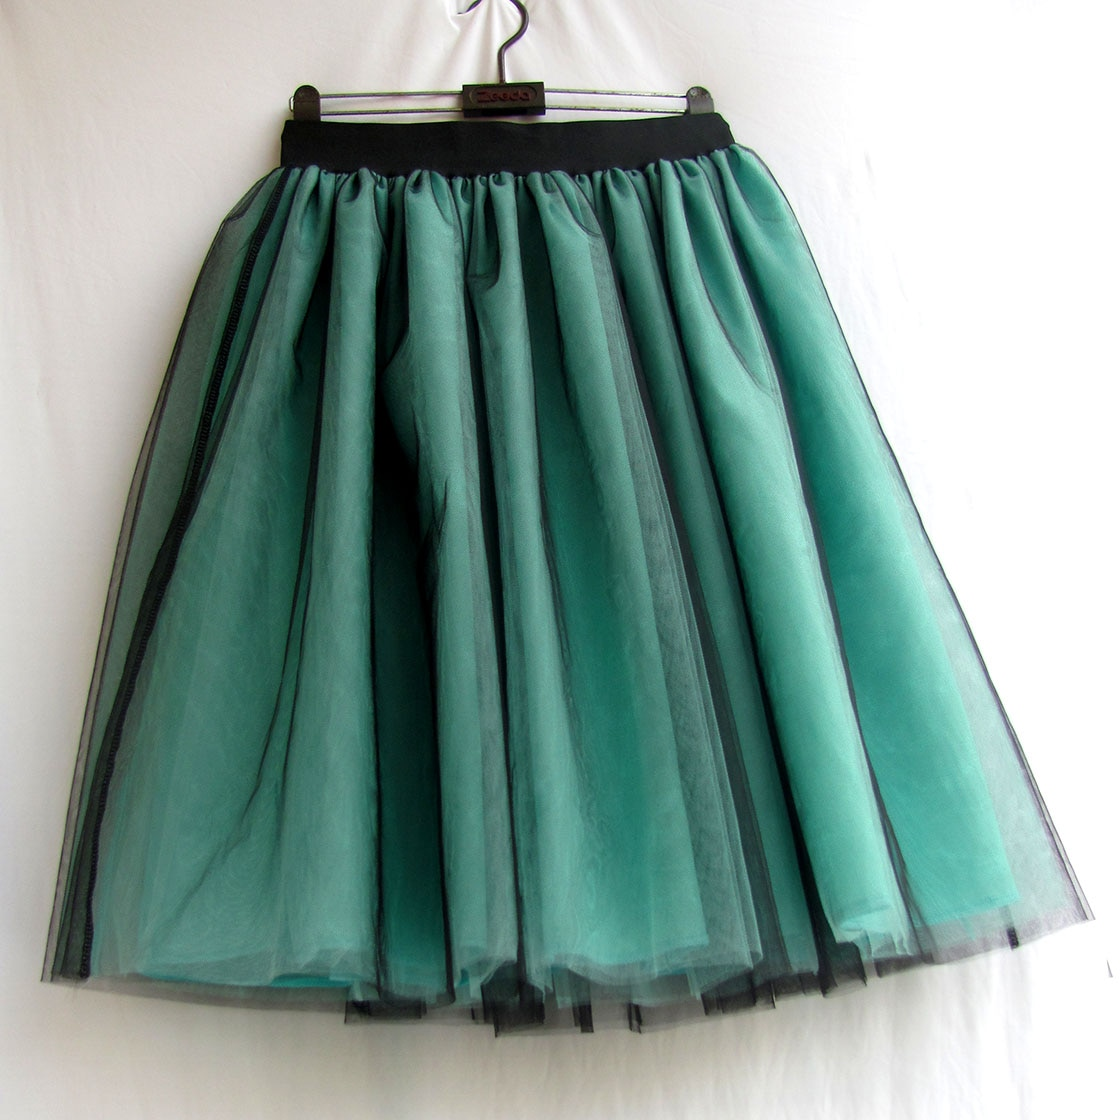 Green Tulle Skirt Womens Ball gown Lace Casual Empire 6 layers Black Fashion Skirt Long Autumn Tutu Skirts Summer Custom made 1